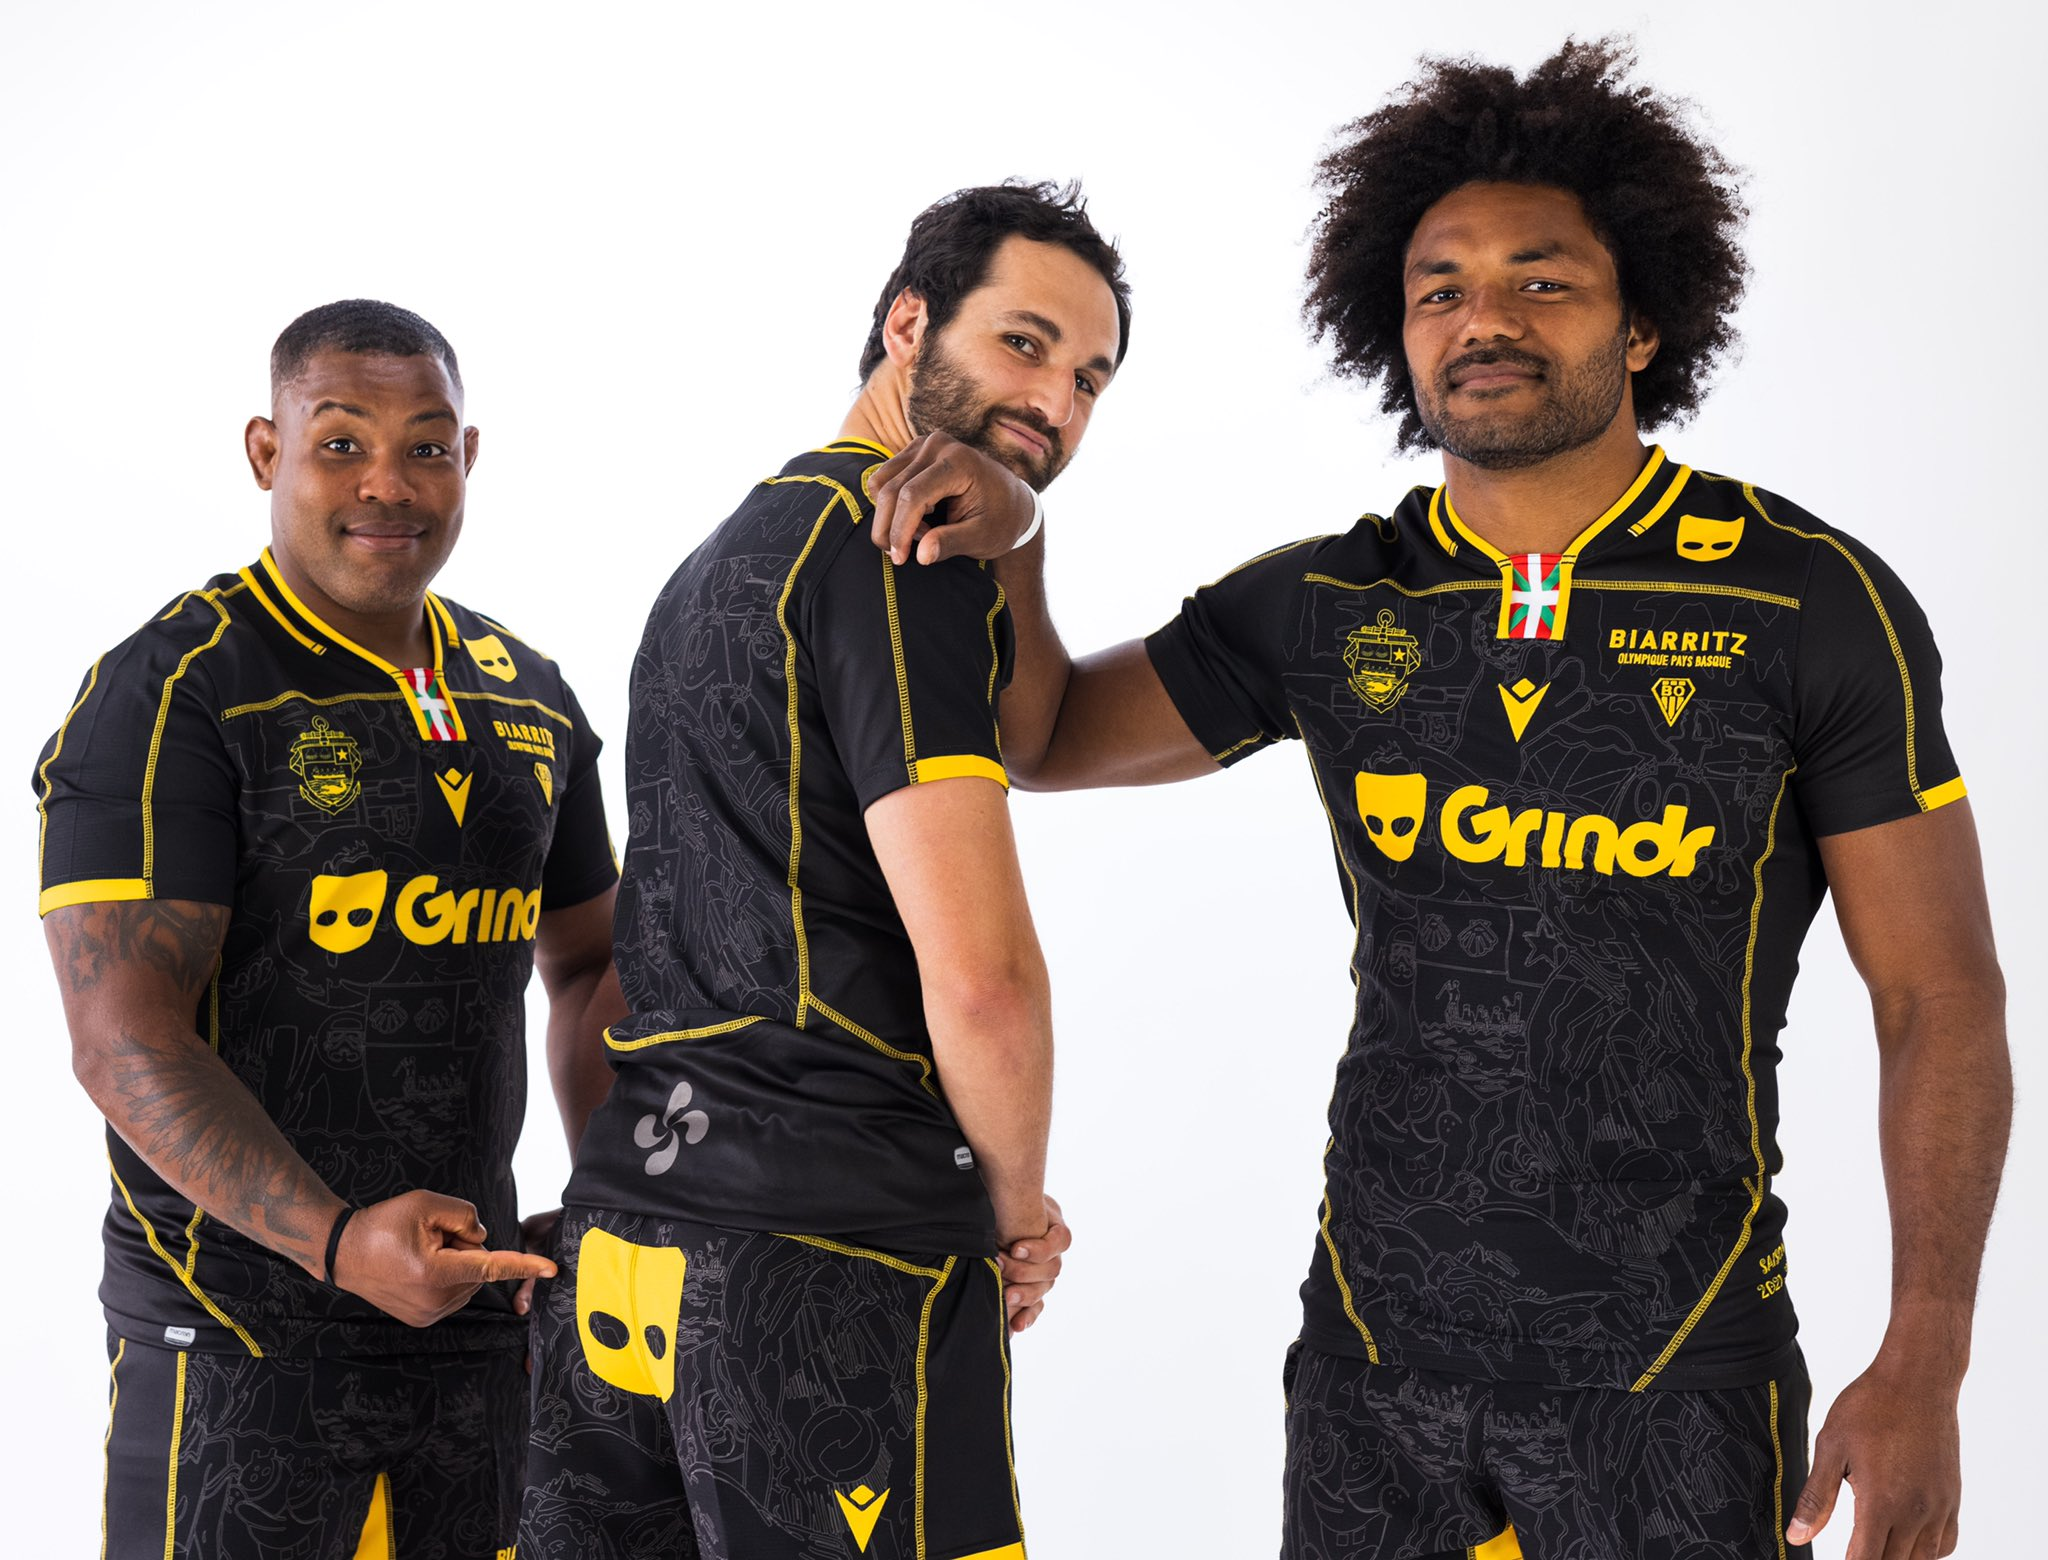 Grindr Announces Kit Sponsorship Deal With French Rugby Club Biarritz Olympique